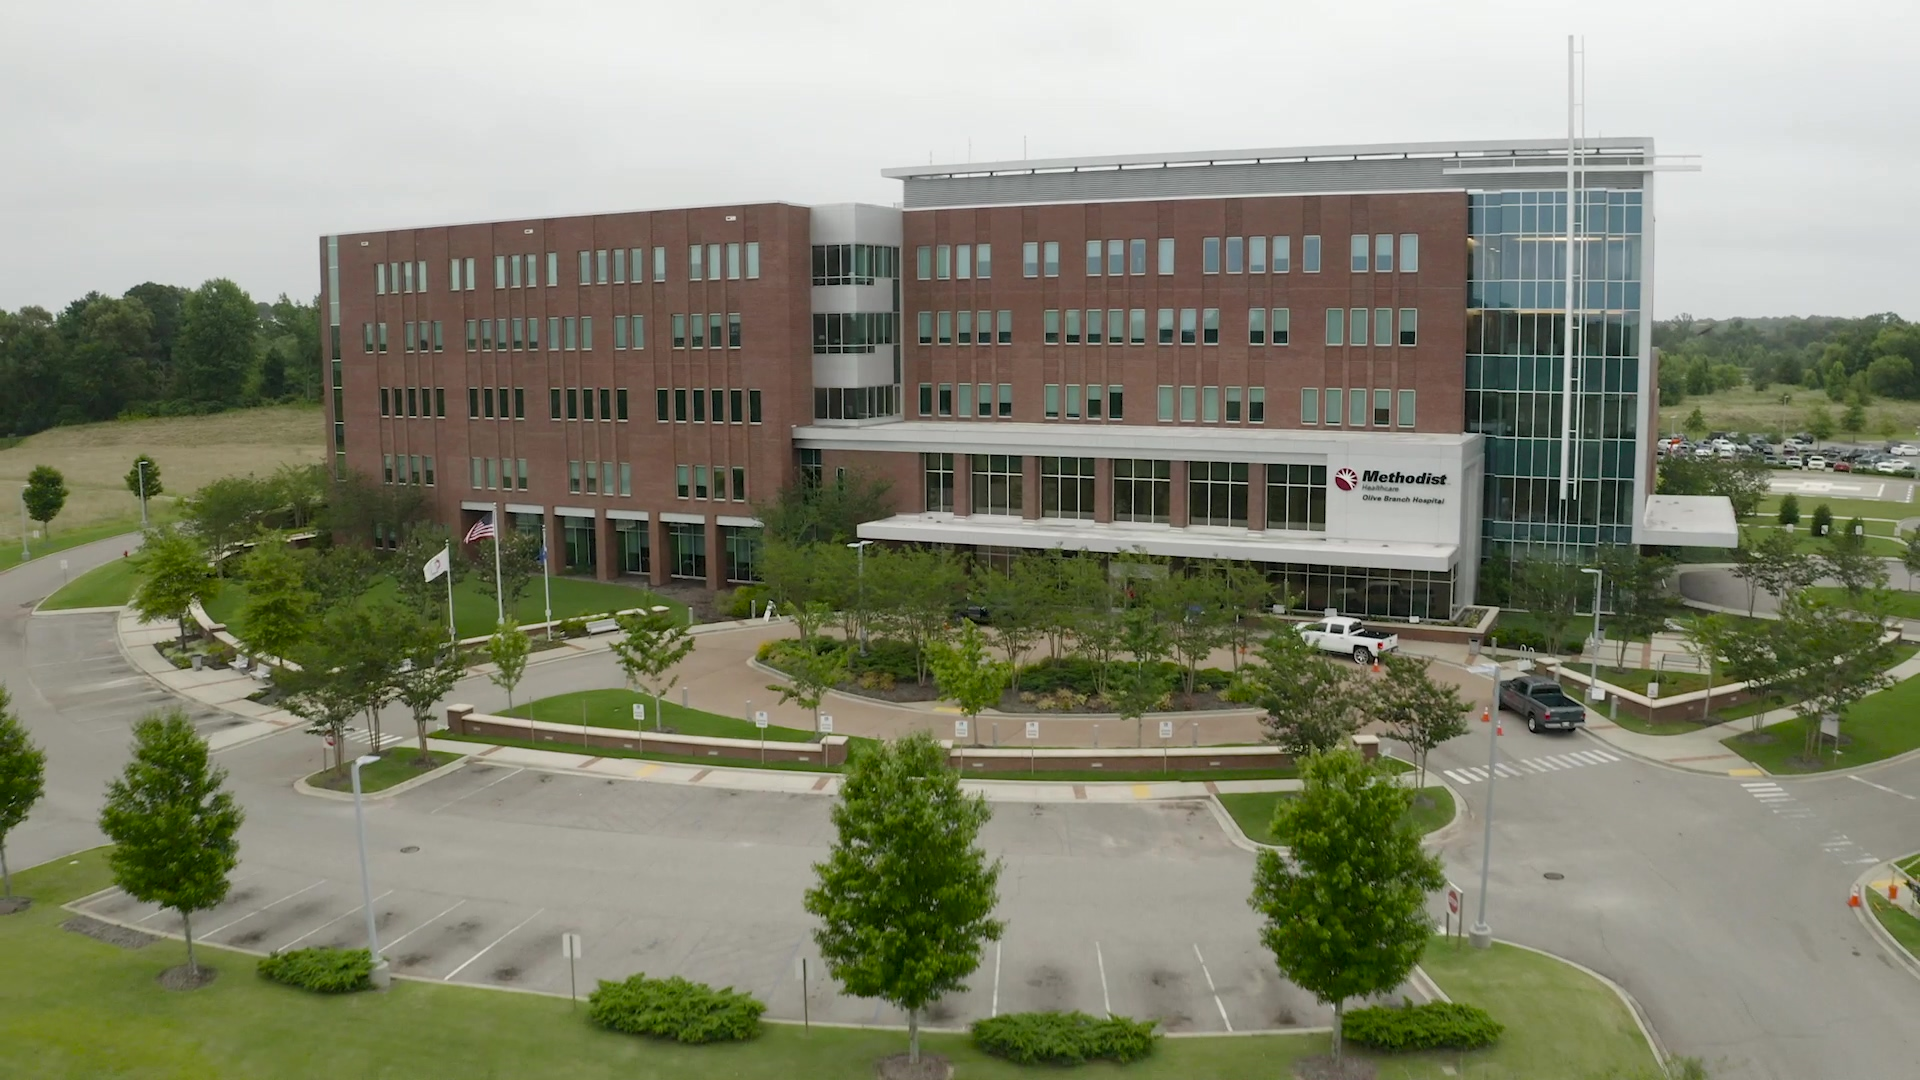 Hospital and Medical Facility Landscaping - Michael Hatcher and Associates